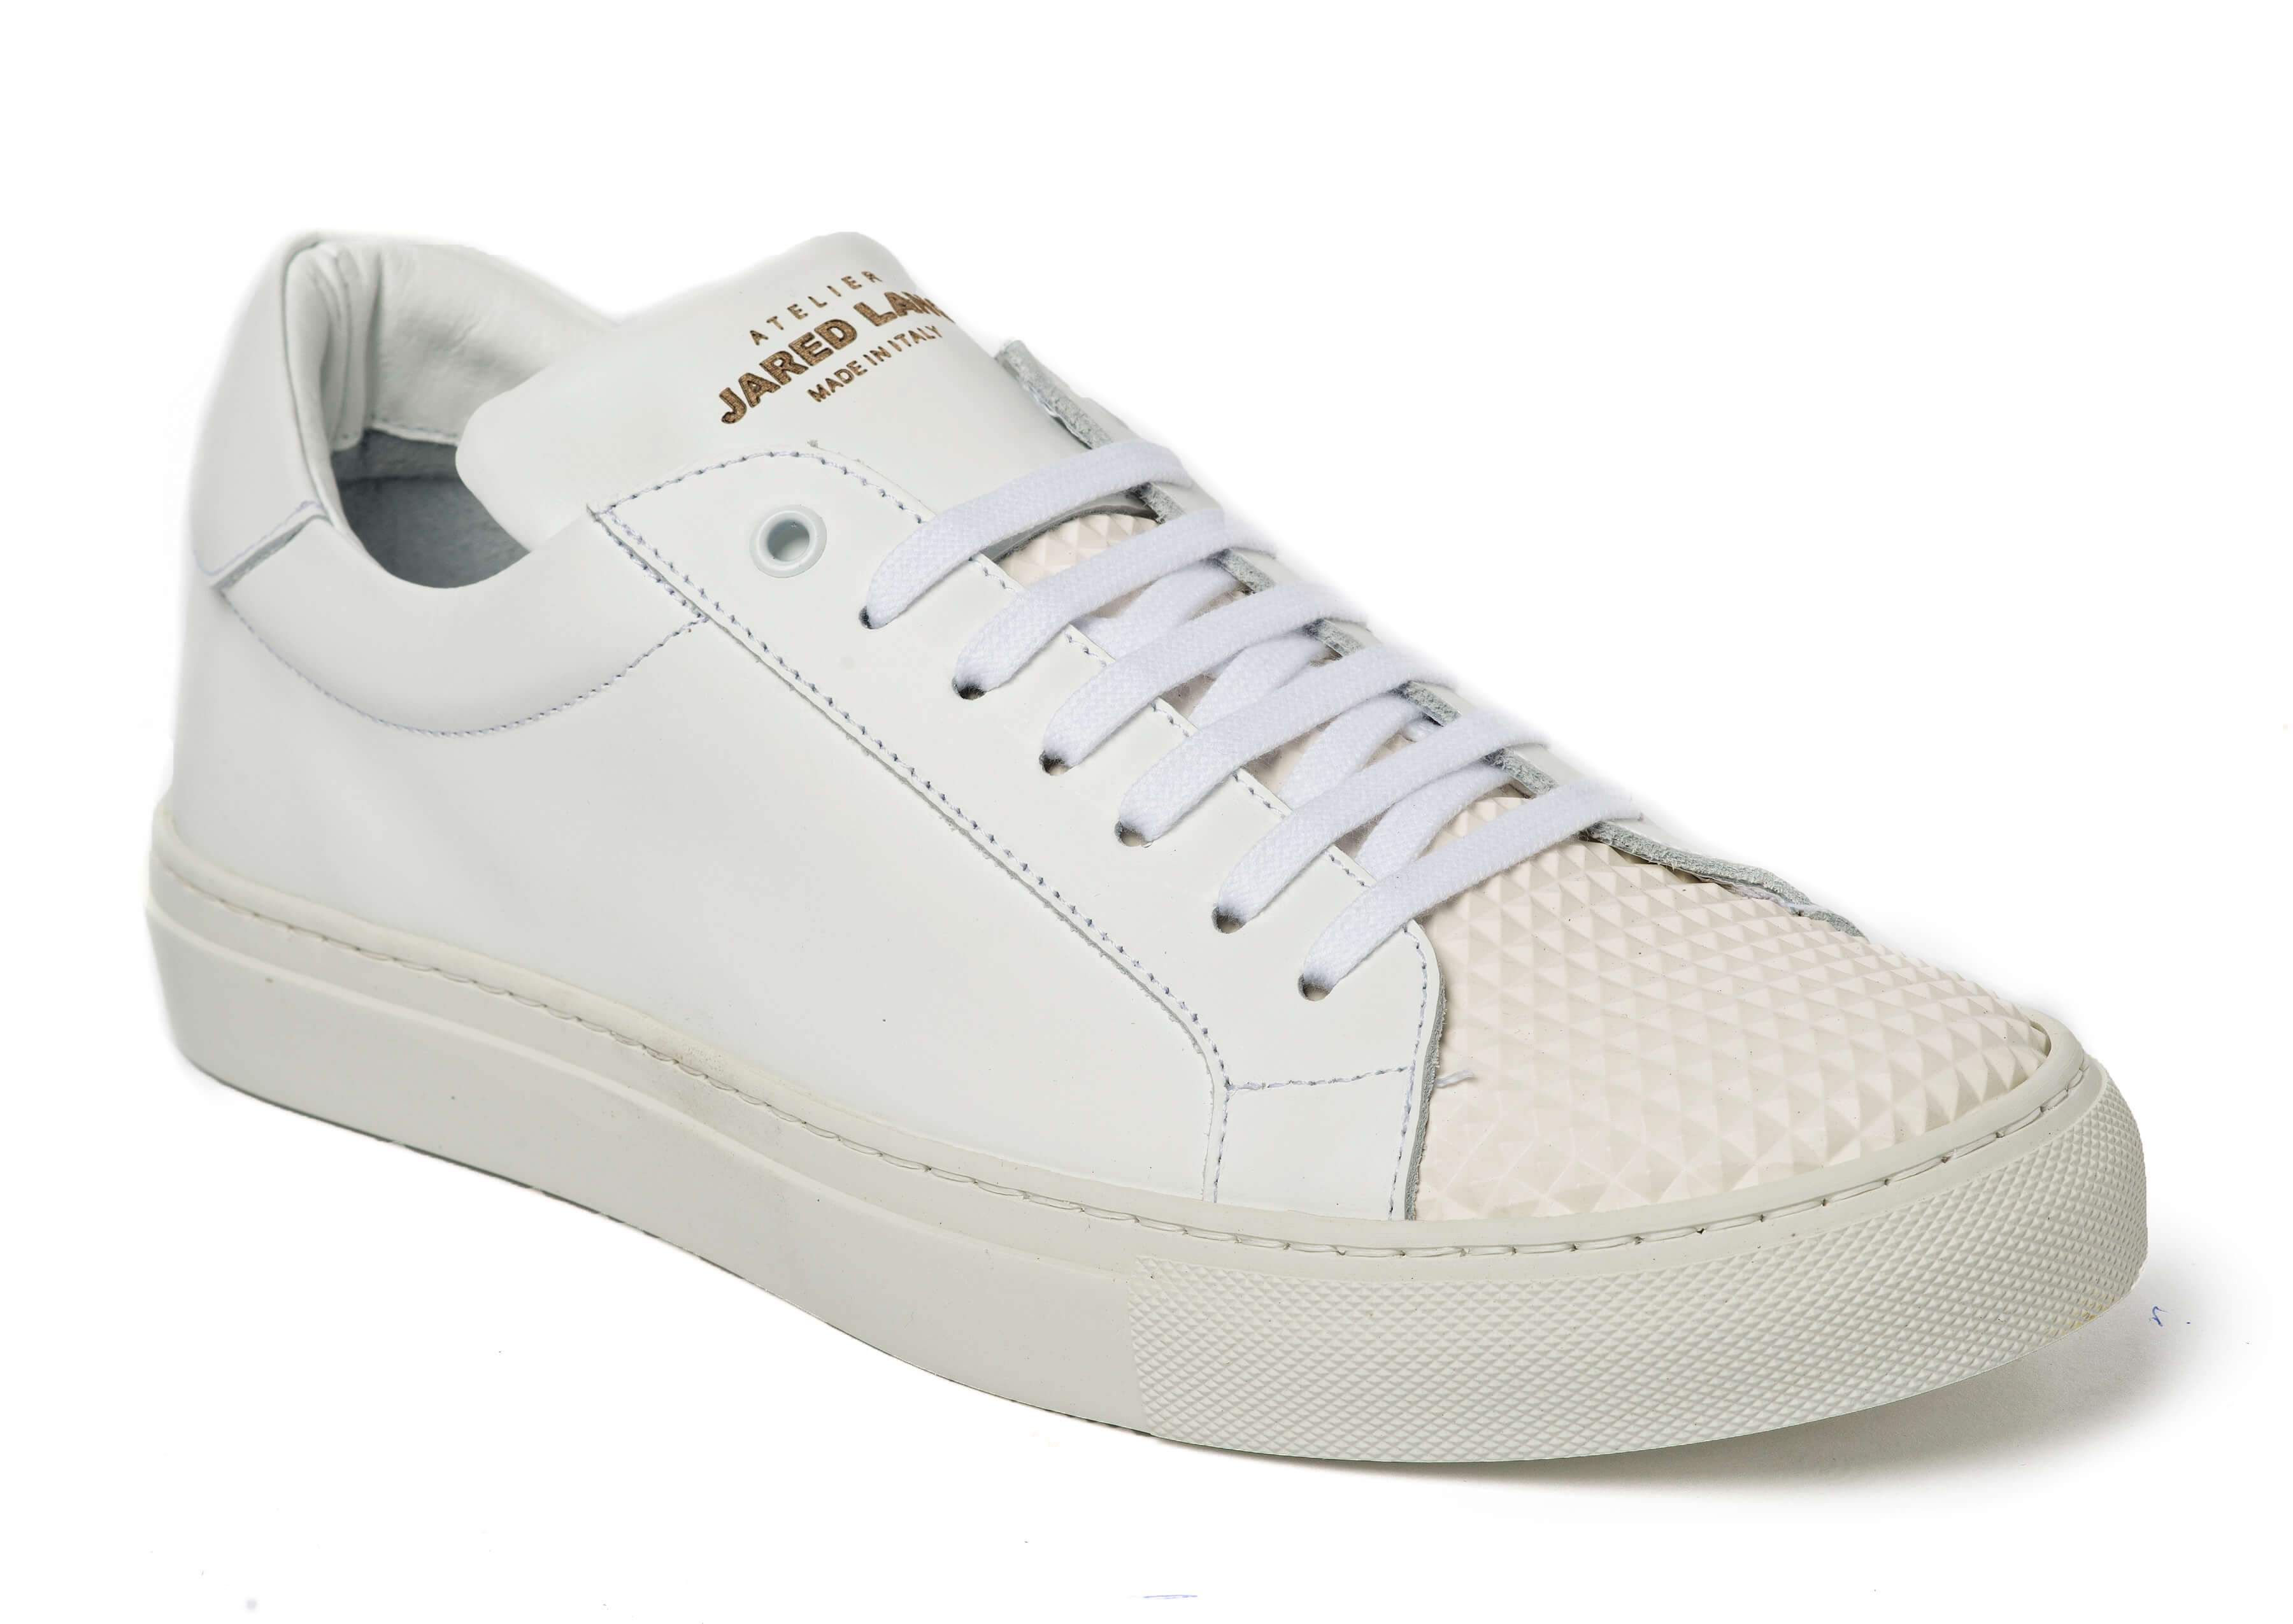 White Leather Sneakers for Men - 2828-WFR - Jared Lang